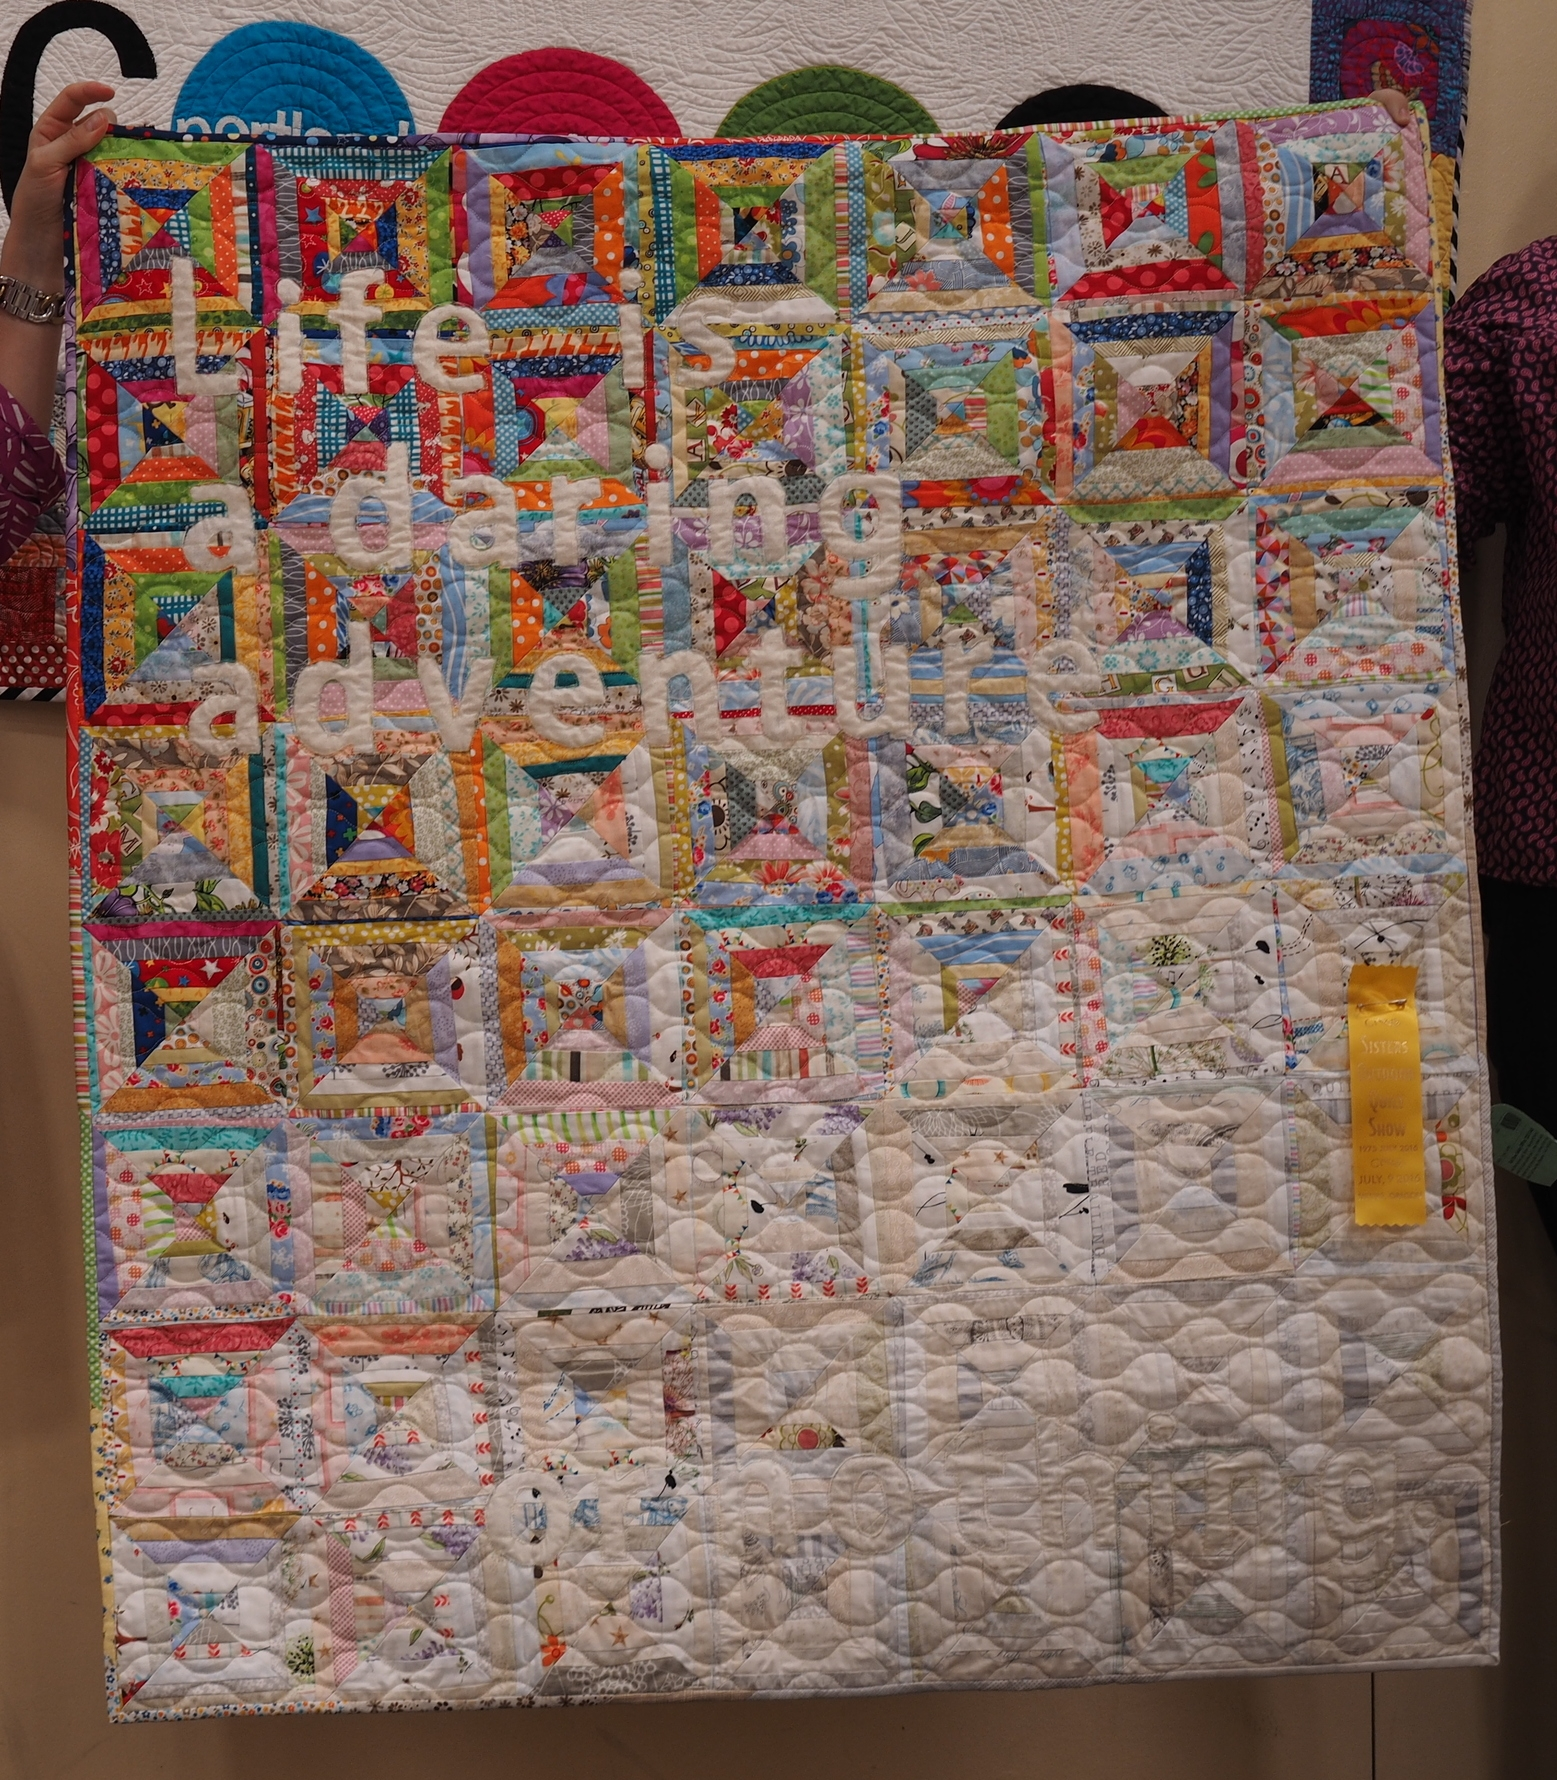 Teresa Coates Life Quote  @teresacoates  Quilted by Zazumi Peterson